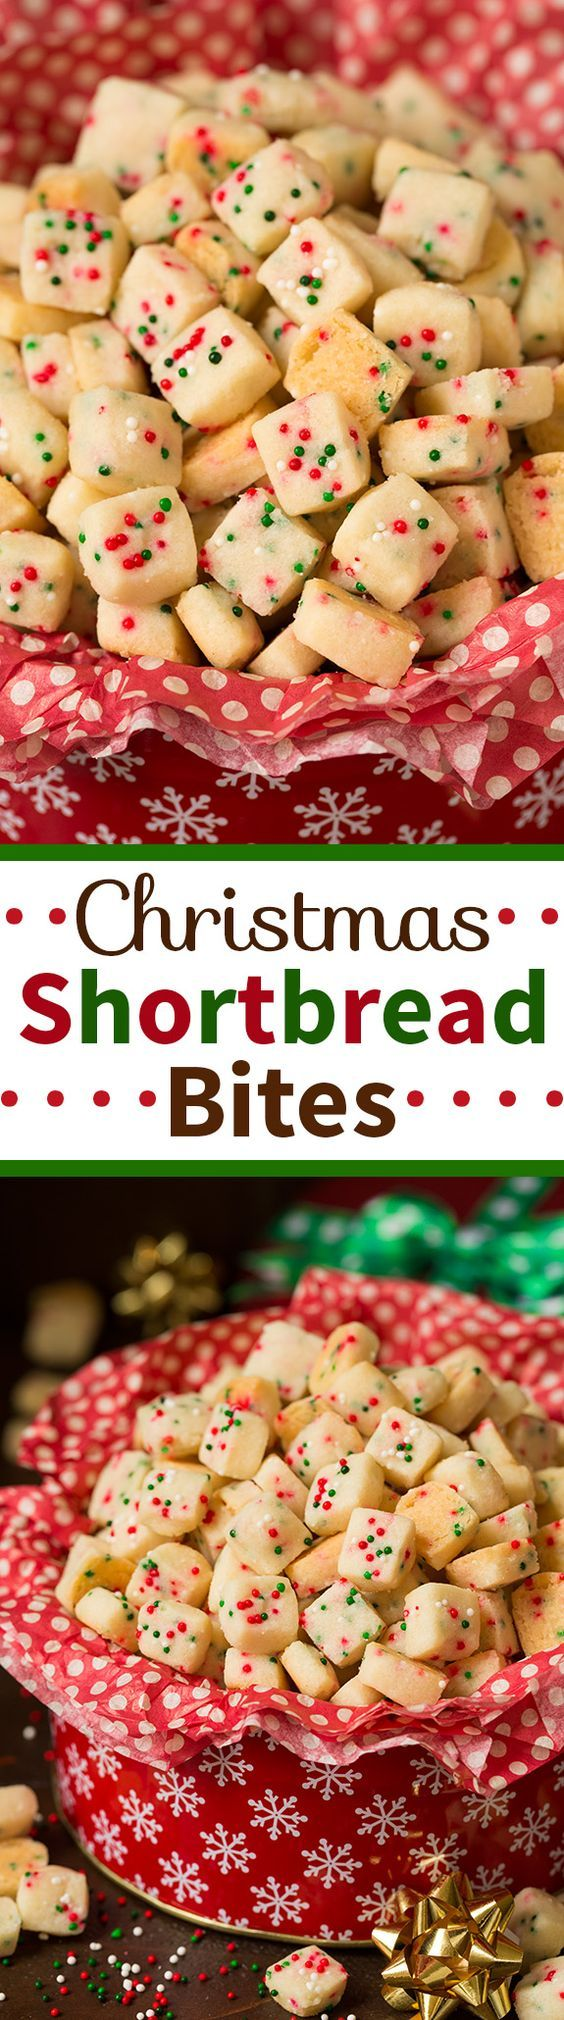 Christmas Shortbread Bites - these are the most pop-able fun to eat cookies out there! They were actually really easy to make and they taste AMAZING! A perfect Christmas treat, but you could also use a rainbow sprinkle blend for birthdays.: